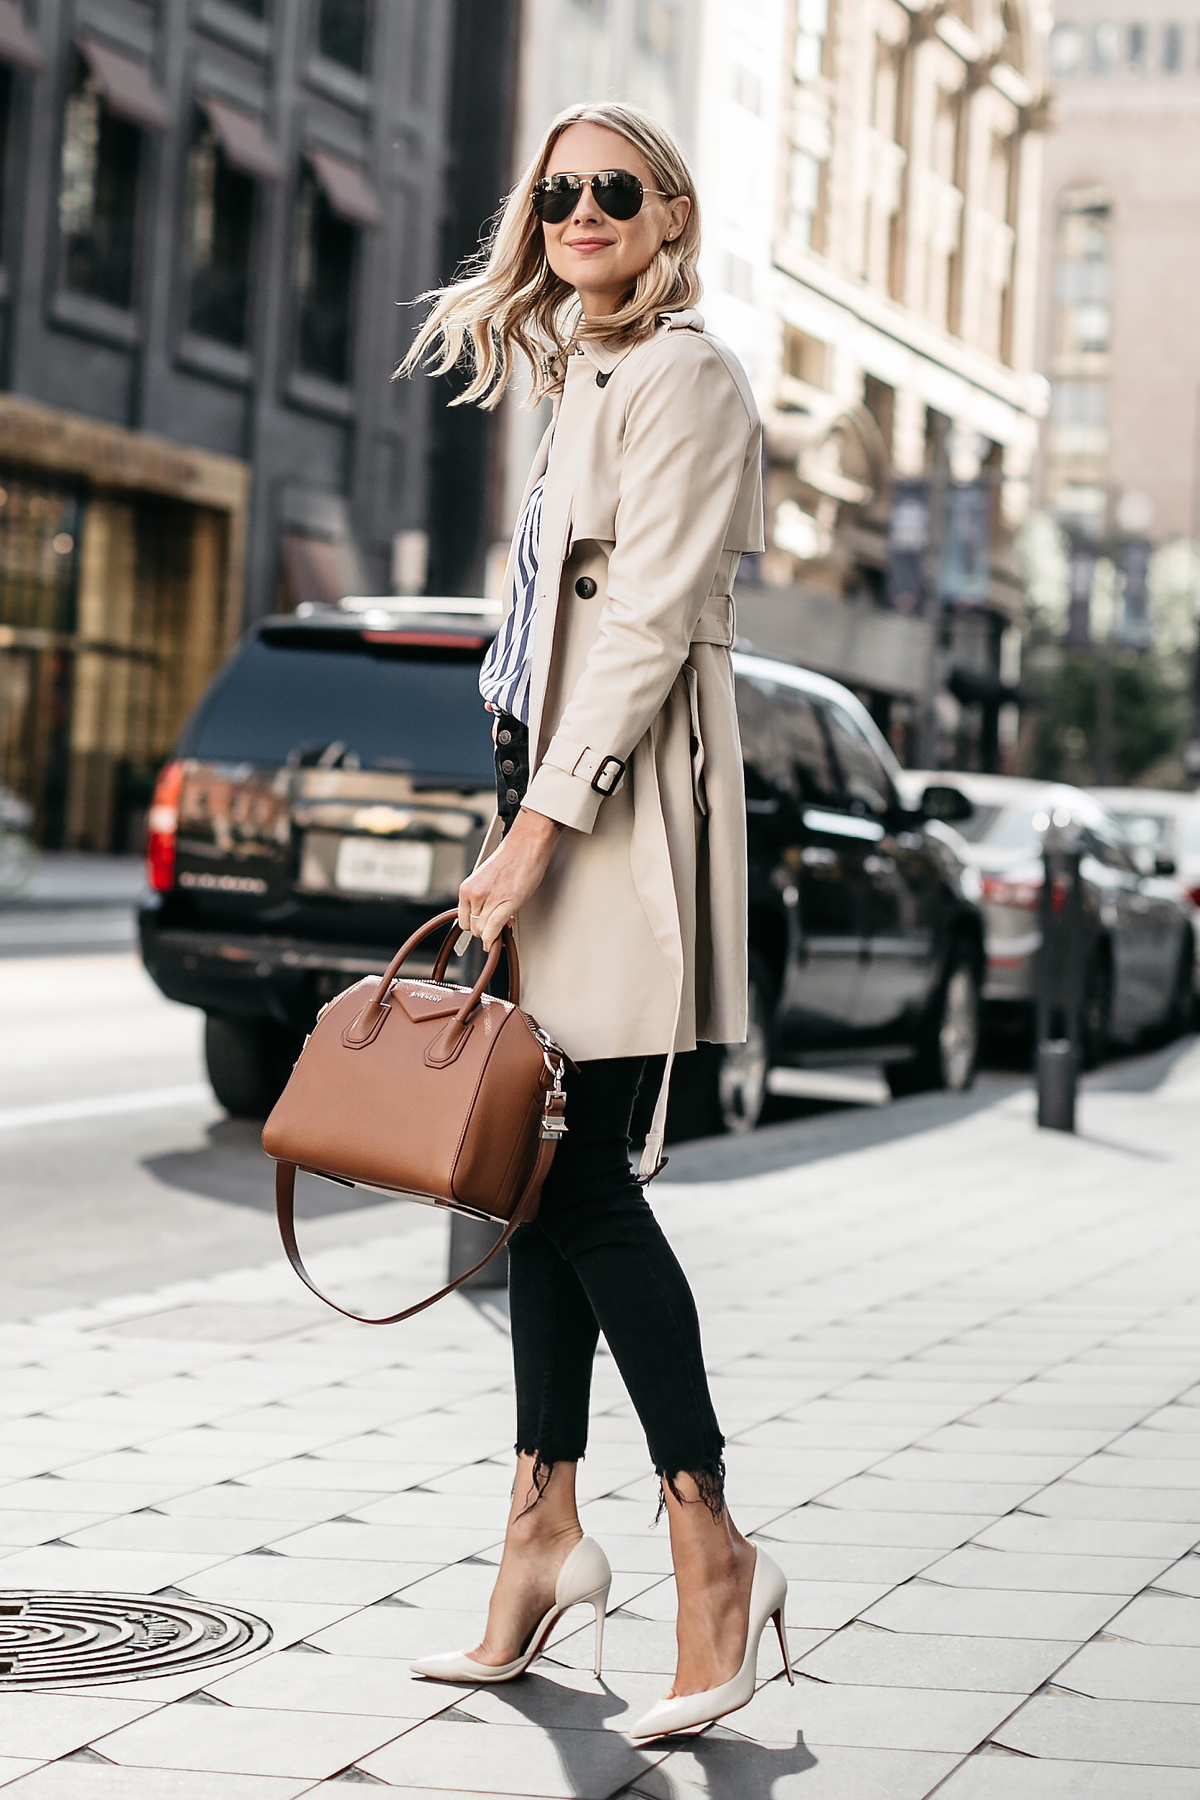 Blonde Woman Wearing Club Monaco Trench Coat Madewell Black Ripped Skinny Jeans Christian Louboutin White Pumps Givenchy Antigona Small Cognac Satchel Celine Aviator Sunglasses Fashion Jackson Dallas Blogger Fashion Blogger Street Style